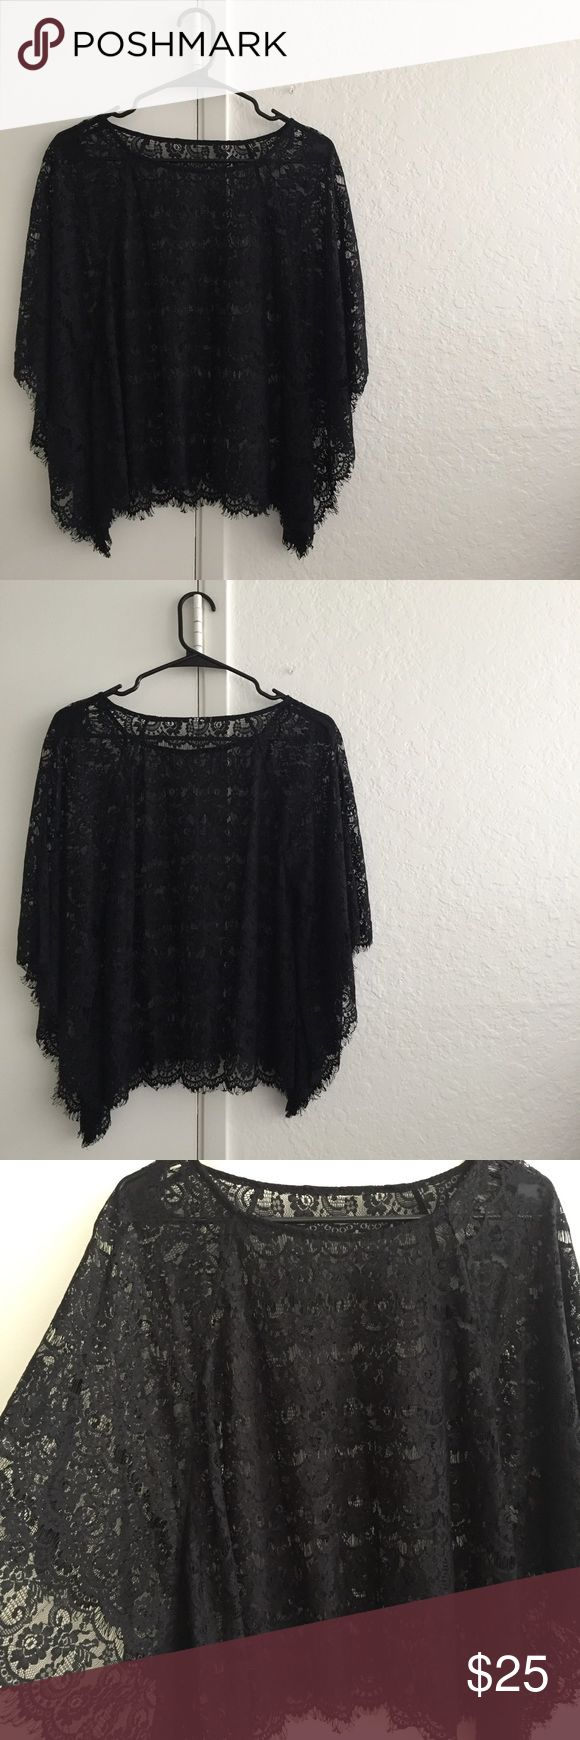 Lace • like new black kimono sleeve layering top A black lace top w. floral pattern, kimono-like sleeves, but w. the shirt structure of a loose short-sleeve top (not poncho style). Carries through all seasons: perfect to layer over a neutral tank, short or long sleeve, or cover-up. Will fit a size 6-10. Tops